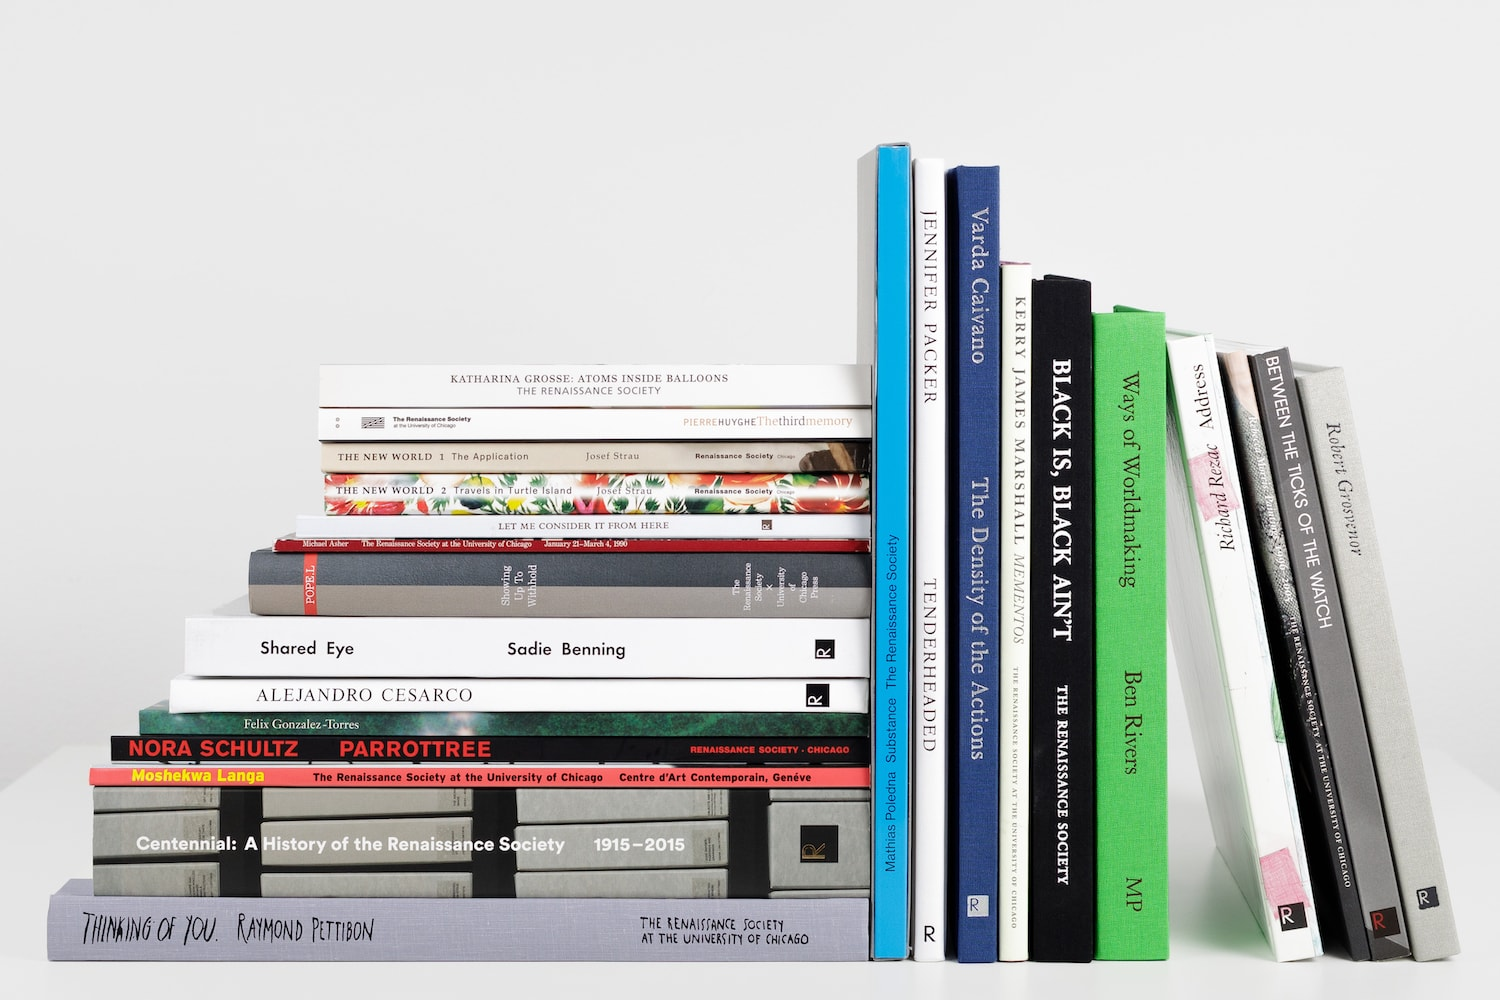 Fourteen books, stacked horizontally, sit next to ten books placed vertically against the stack.